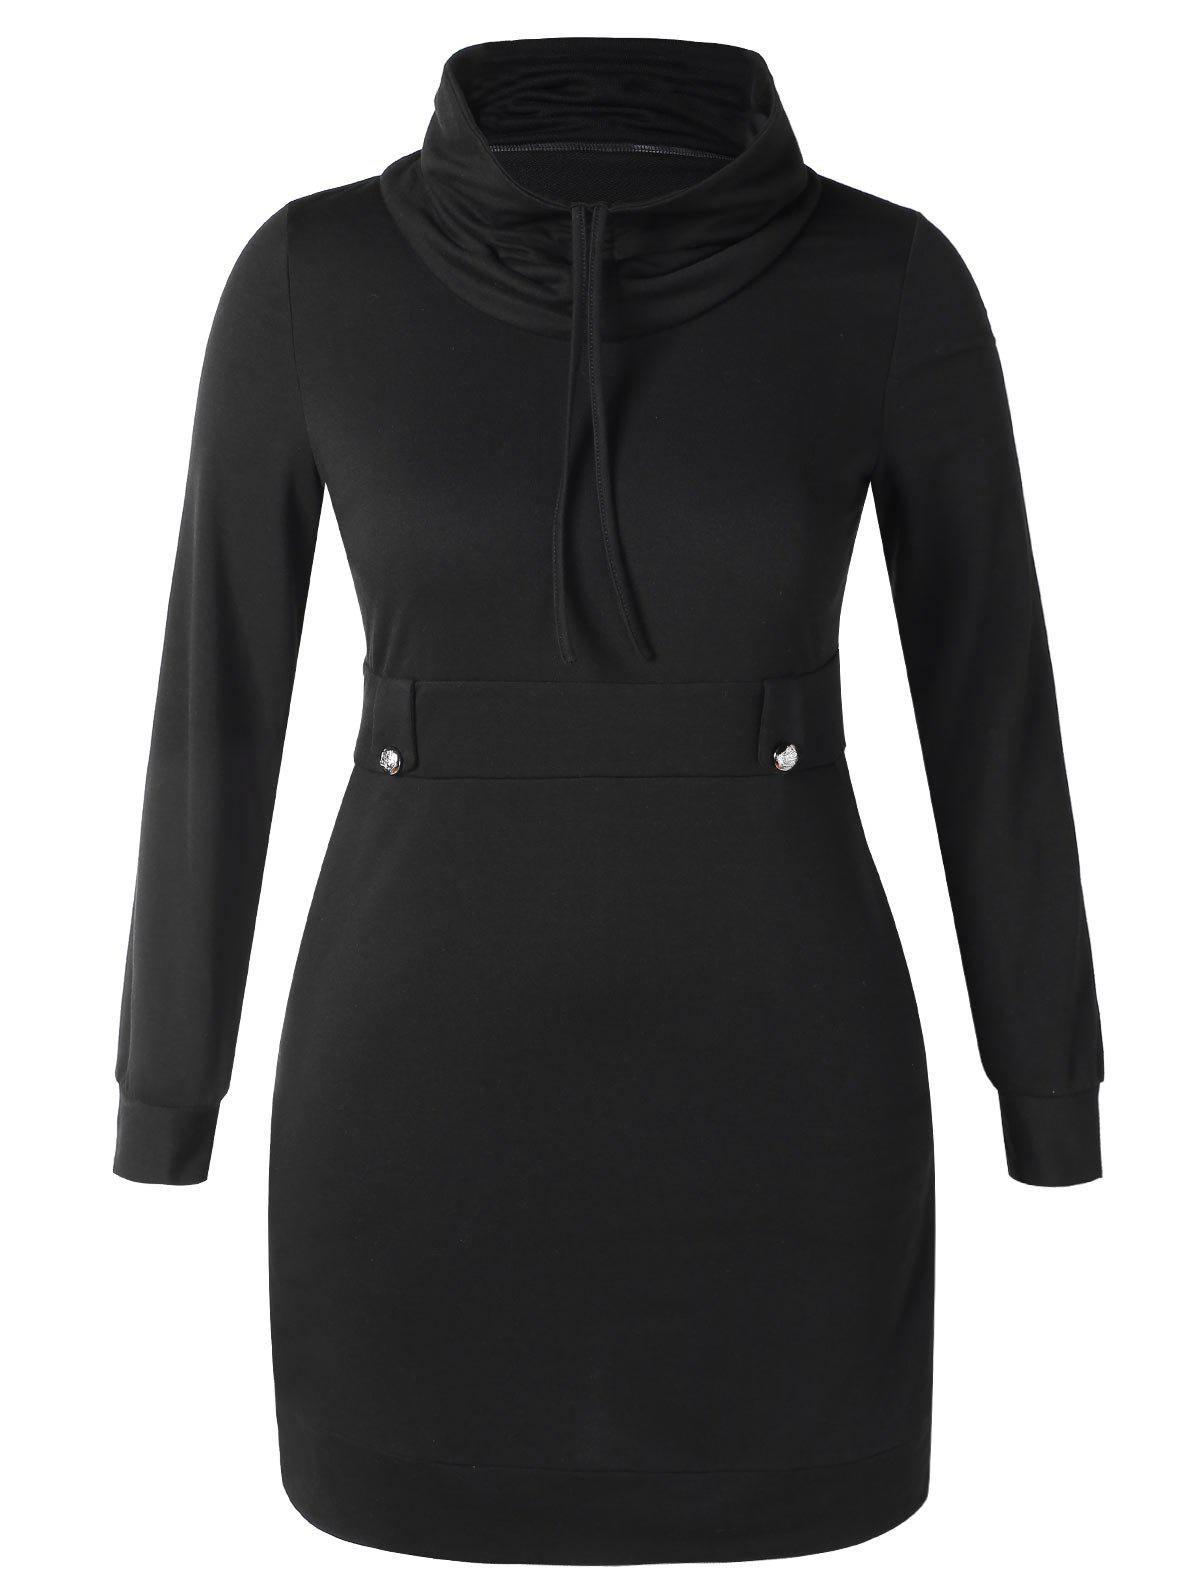 Plus Size Cowl Neck Bodycon Hoodie Dress - BLACK L